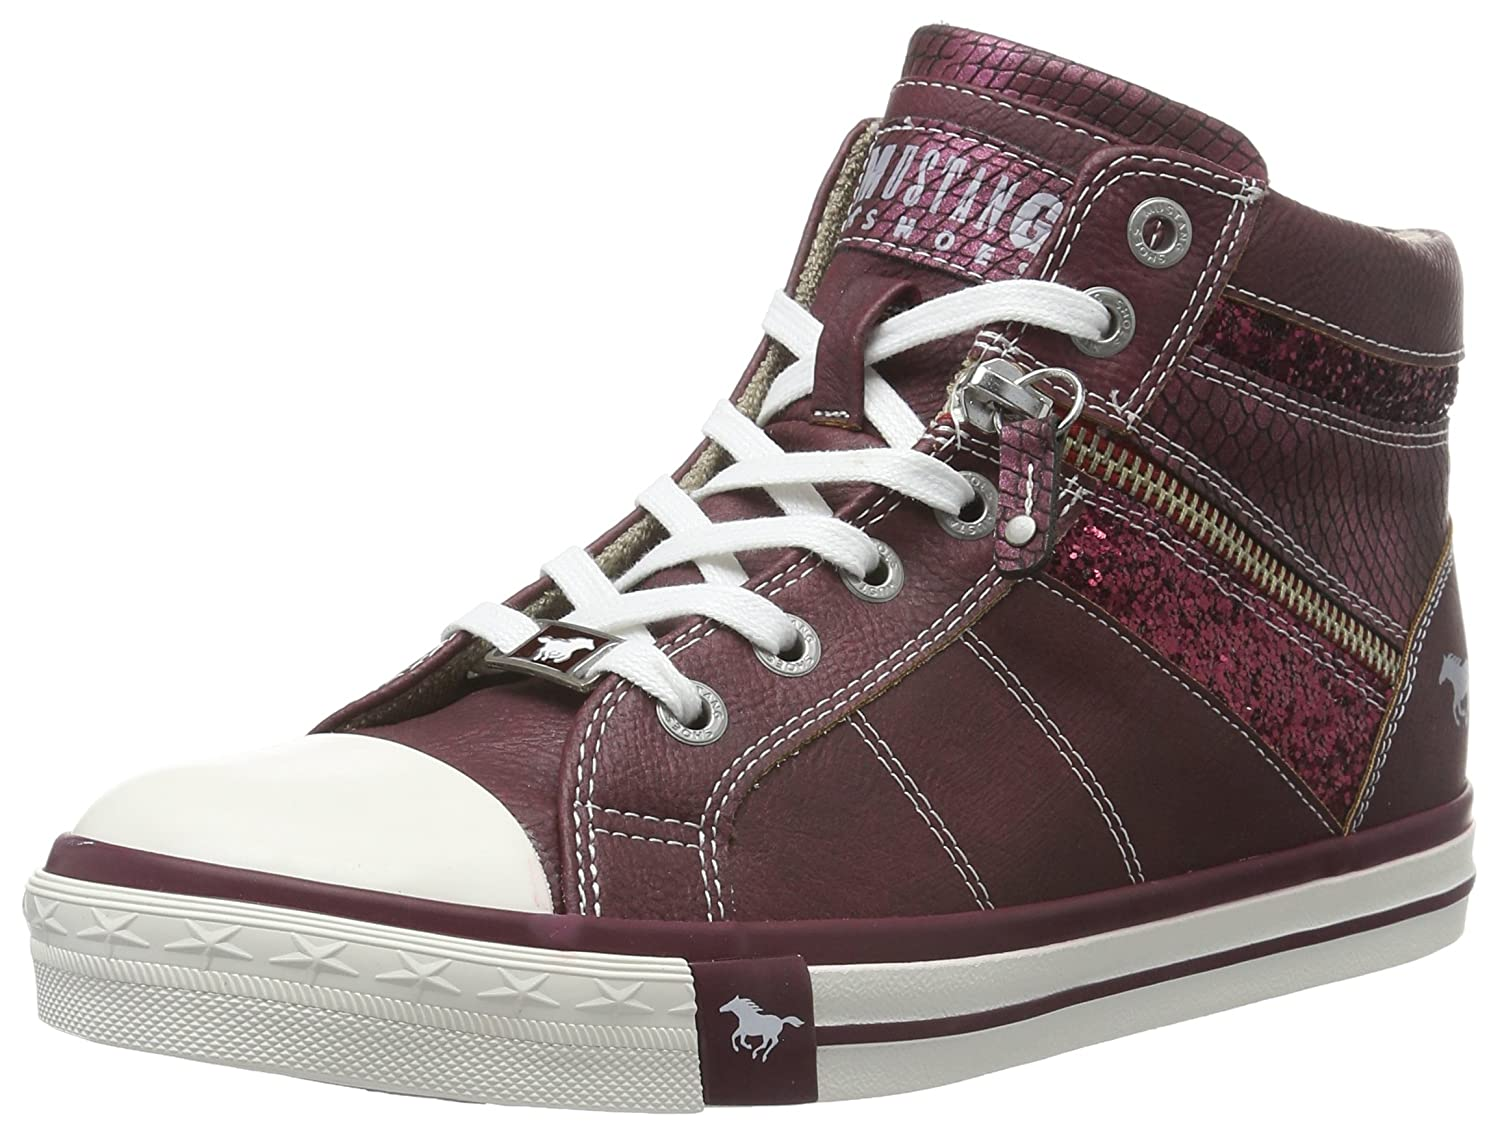 Mustang Damen 1146-508-259 High-Top, Grau (259 Graphit), 37 EU